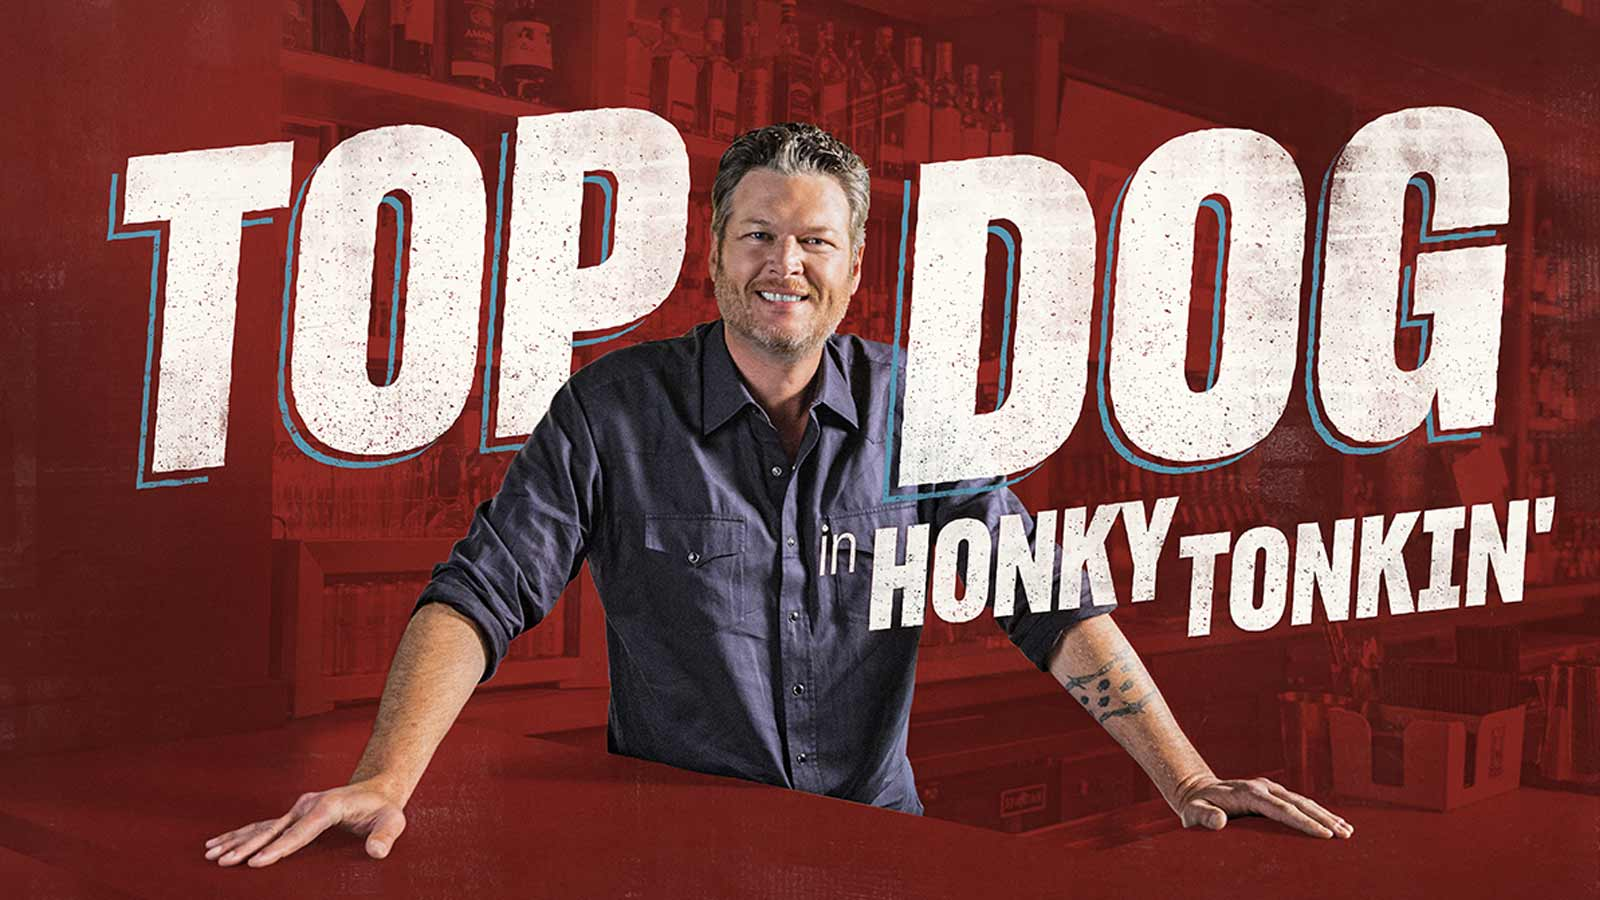 Top Dog in Honky Tonkin'!